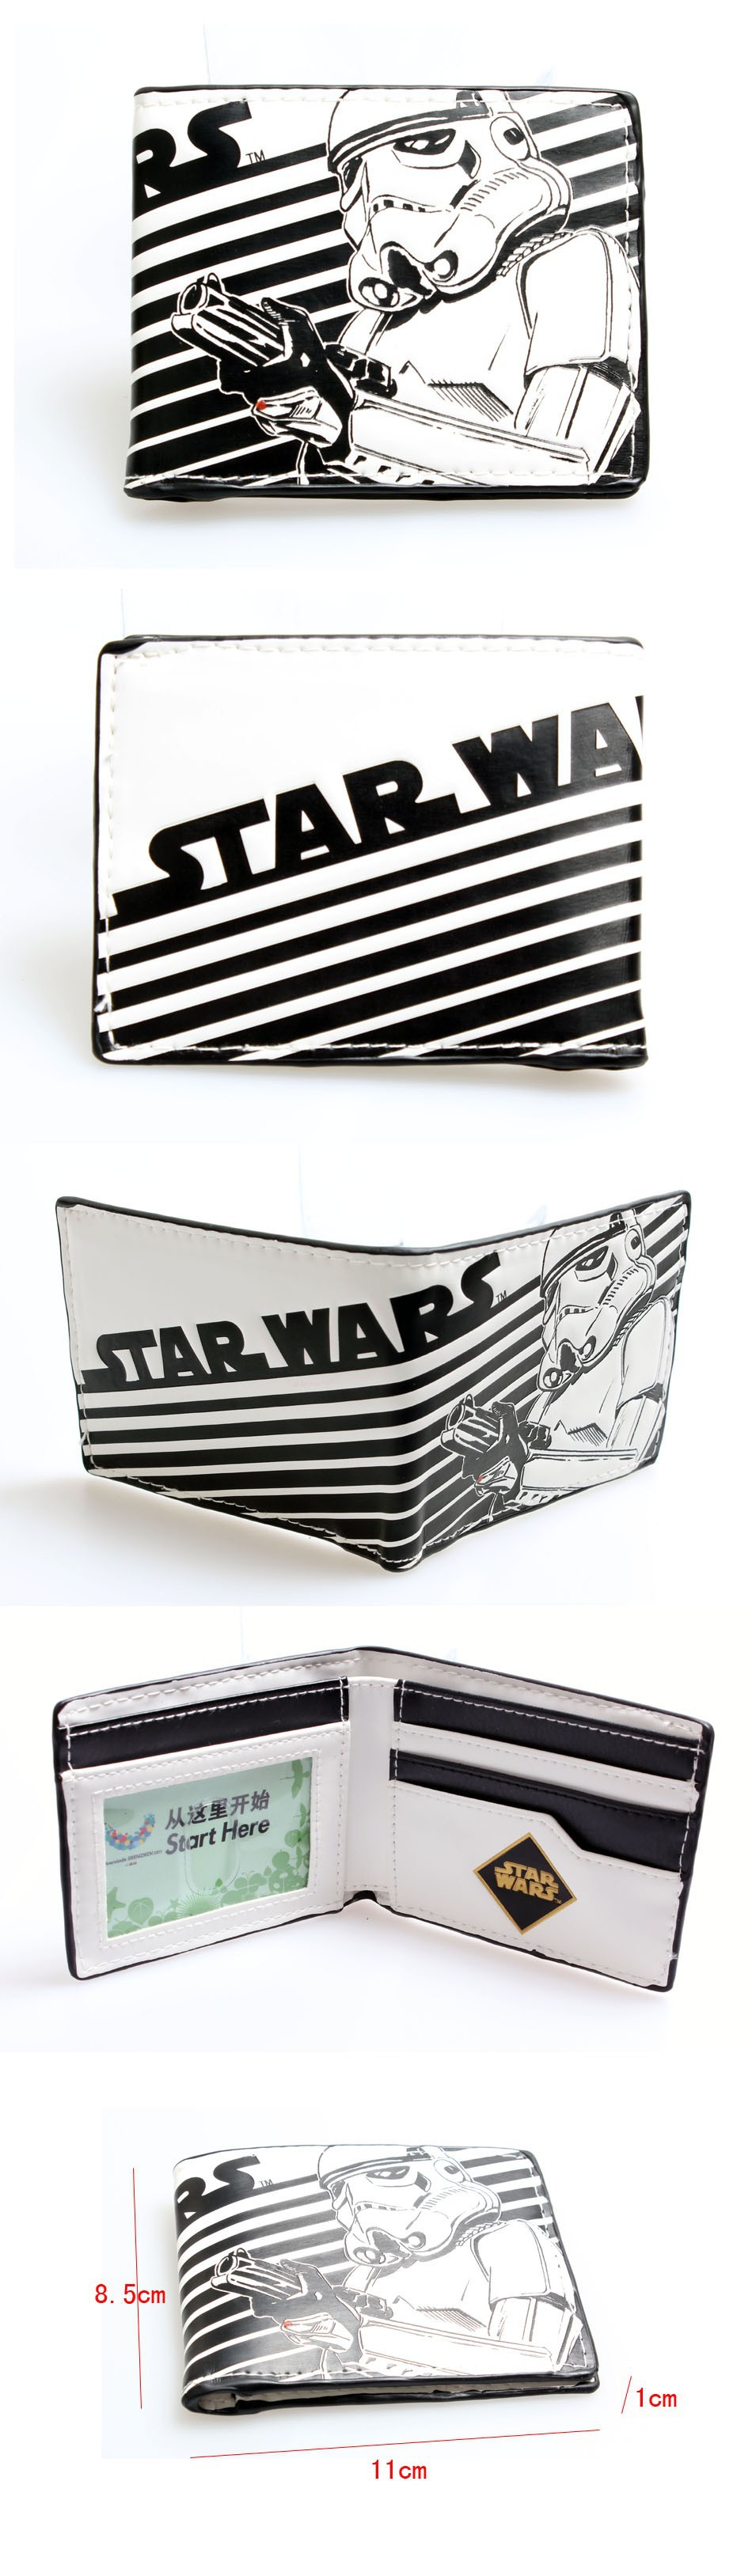 Star Wars Wallet Stormtrooper